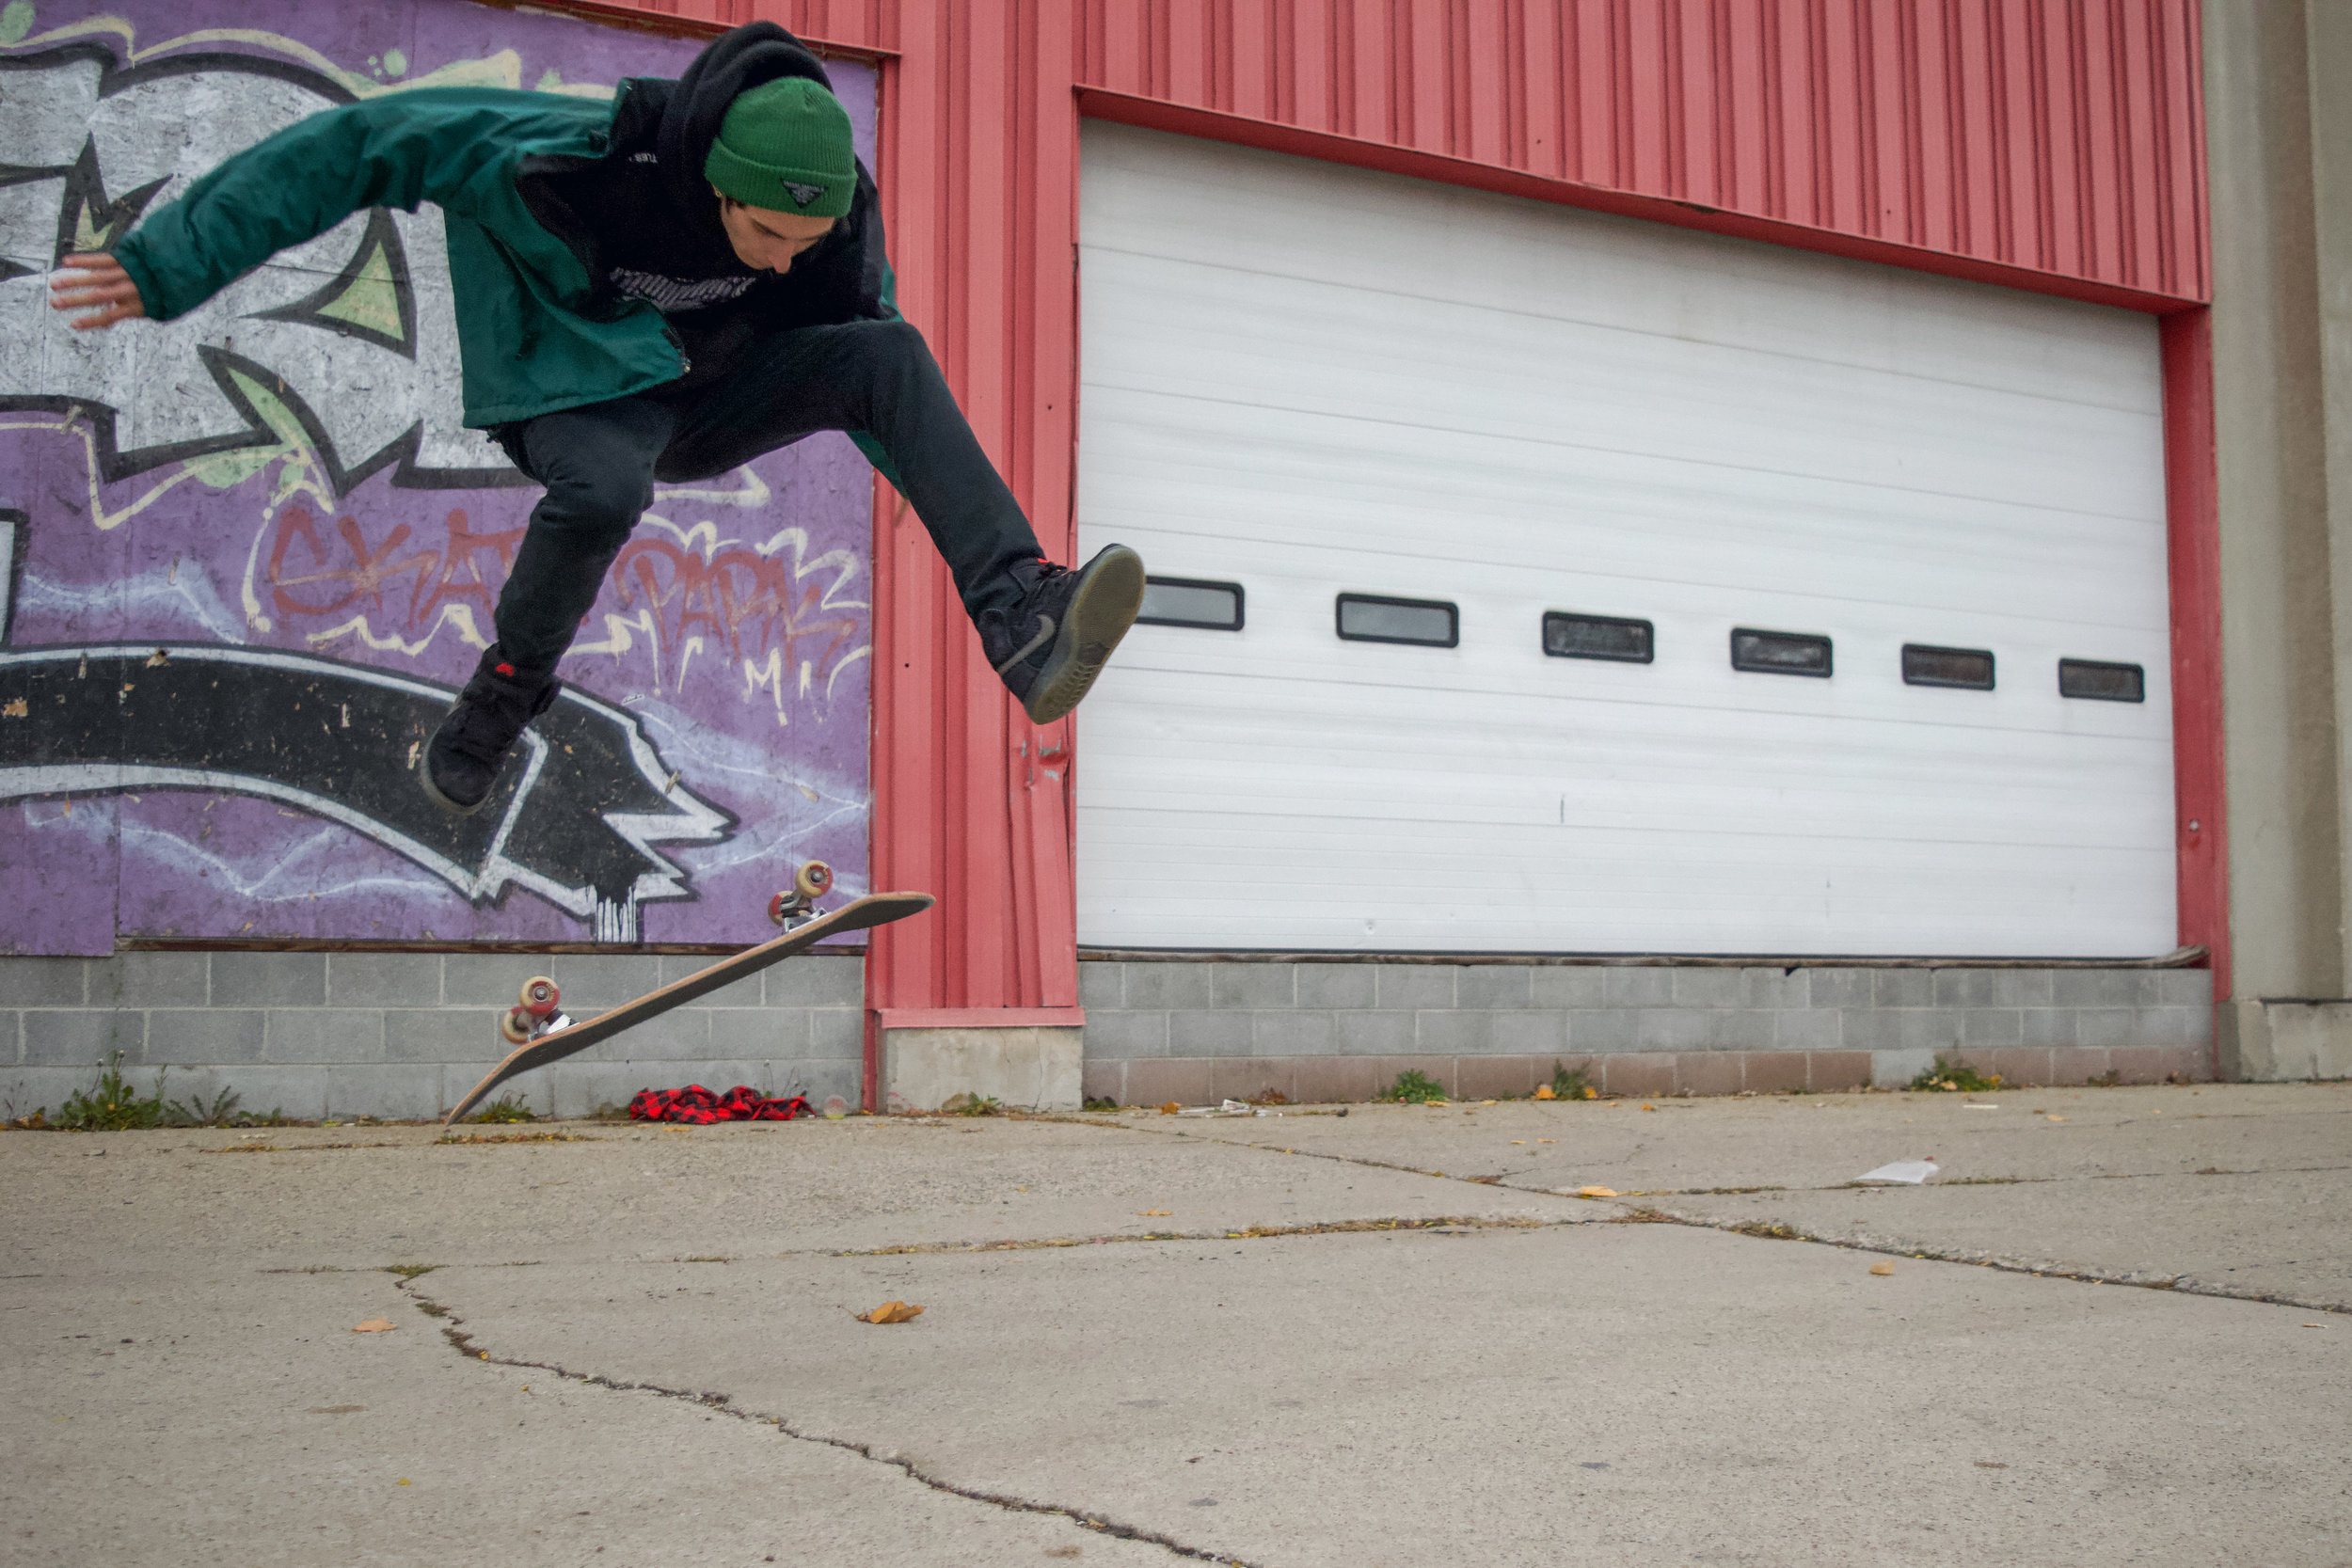 Local Legends: Tales from the Skate Park